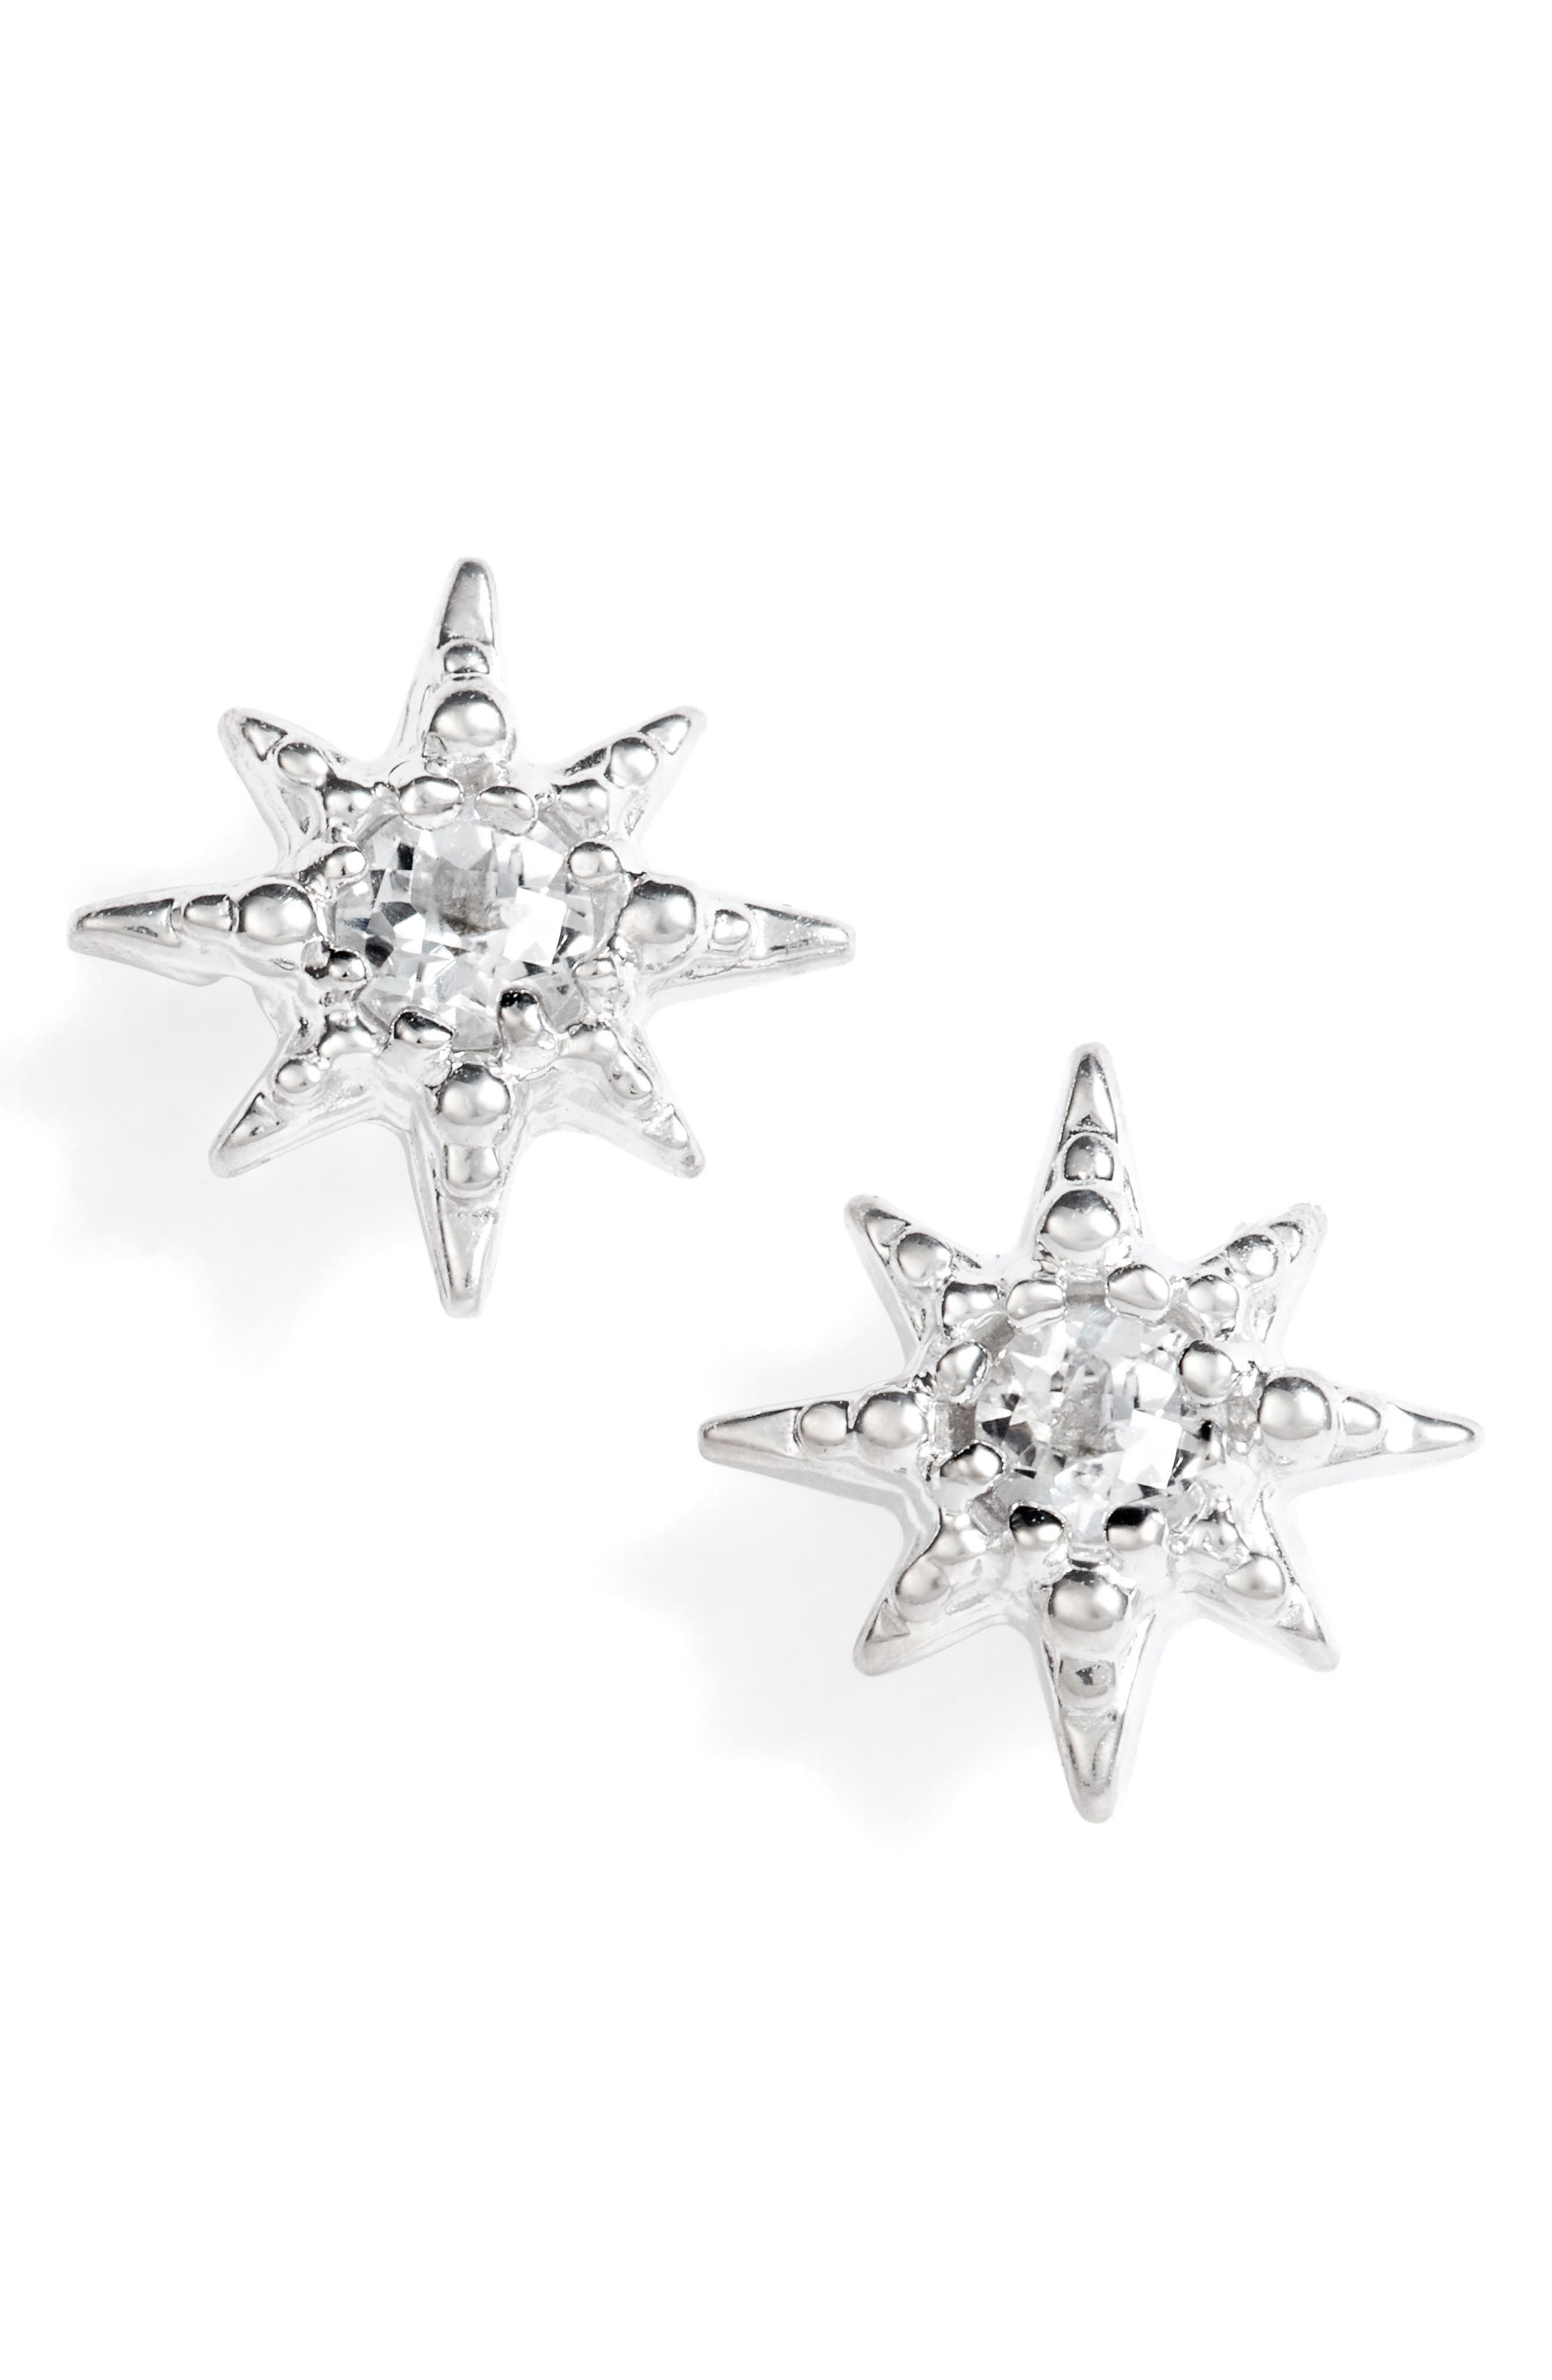 Micro Aztec Starburst Earrings,                             Main thumbnail 1, color,                             Silver